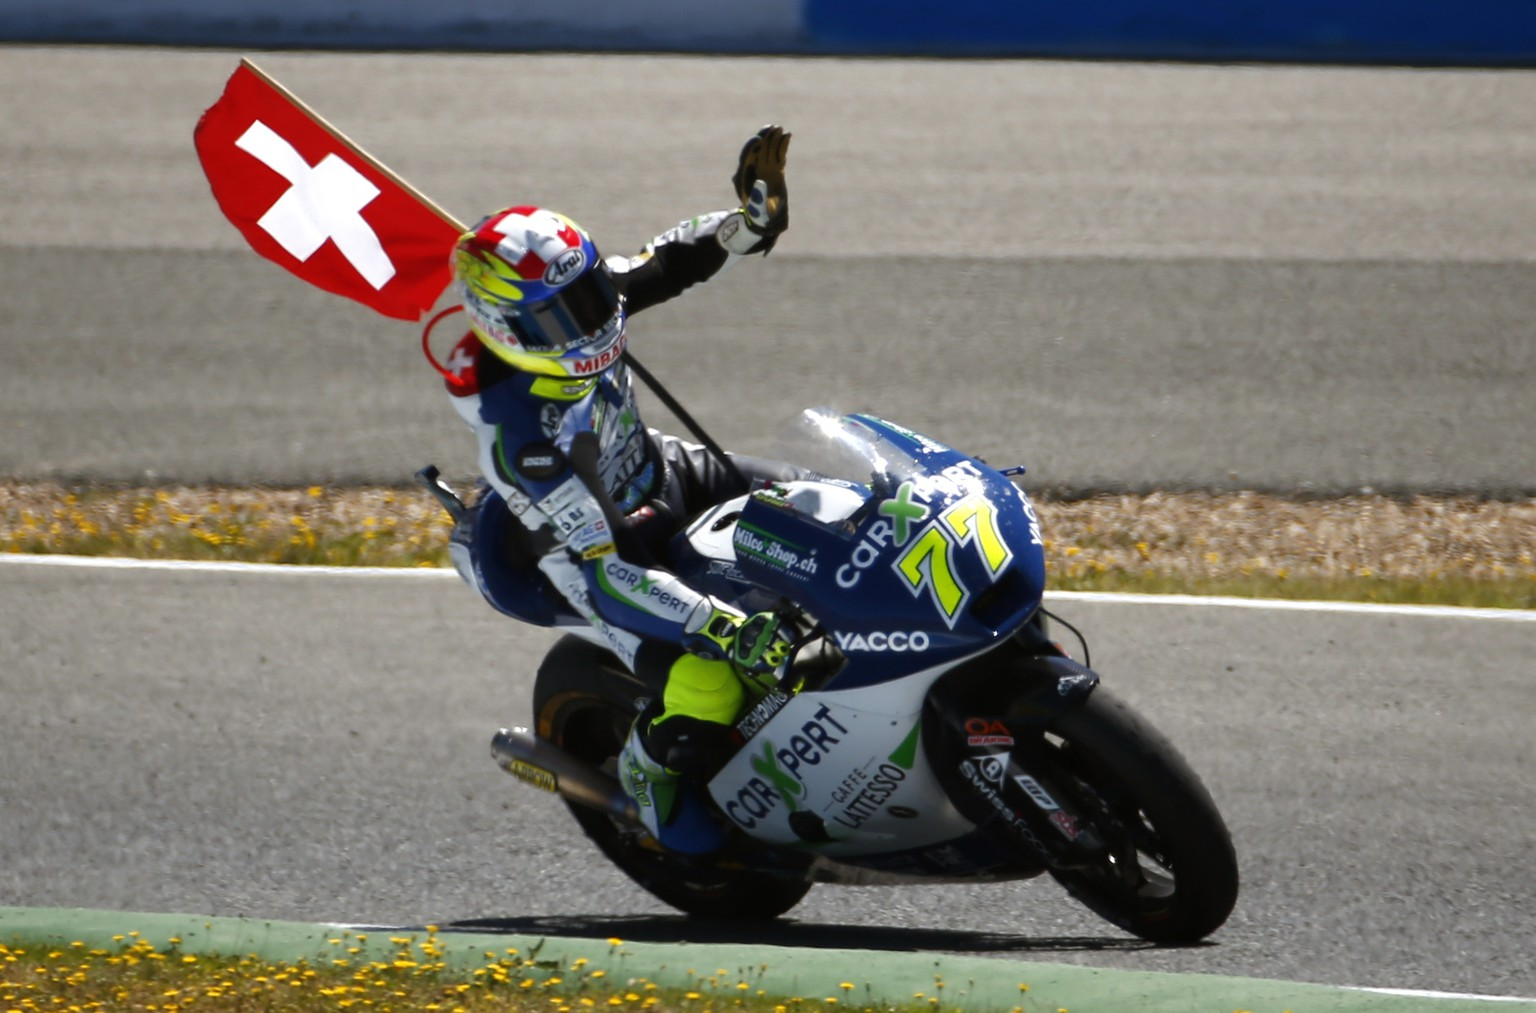 Moto 2 rider Dominique Aegerter of Switzerland waves after finishing in second position at the Spain's Motorcycle Grand Prix at the Jerez race track on Sunday, May 4, 2014 in Jerez de la Frontera, southern Spain. (AP Photo/Miguel Angel Morenatti)